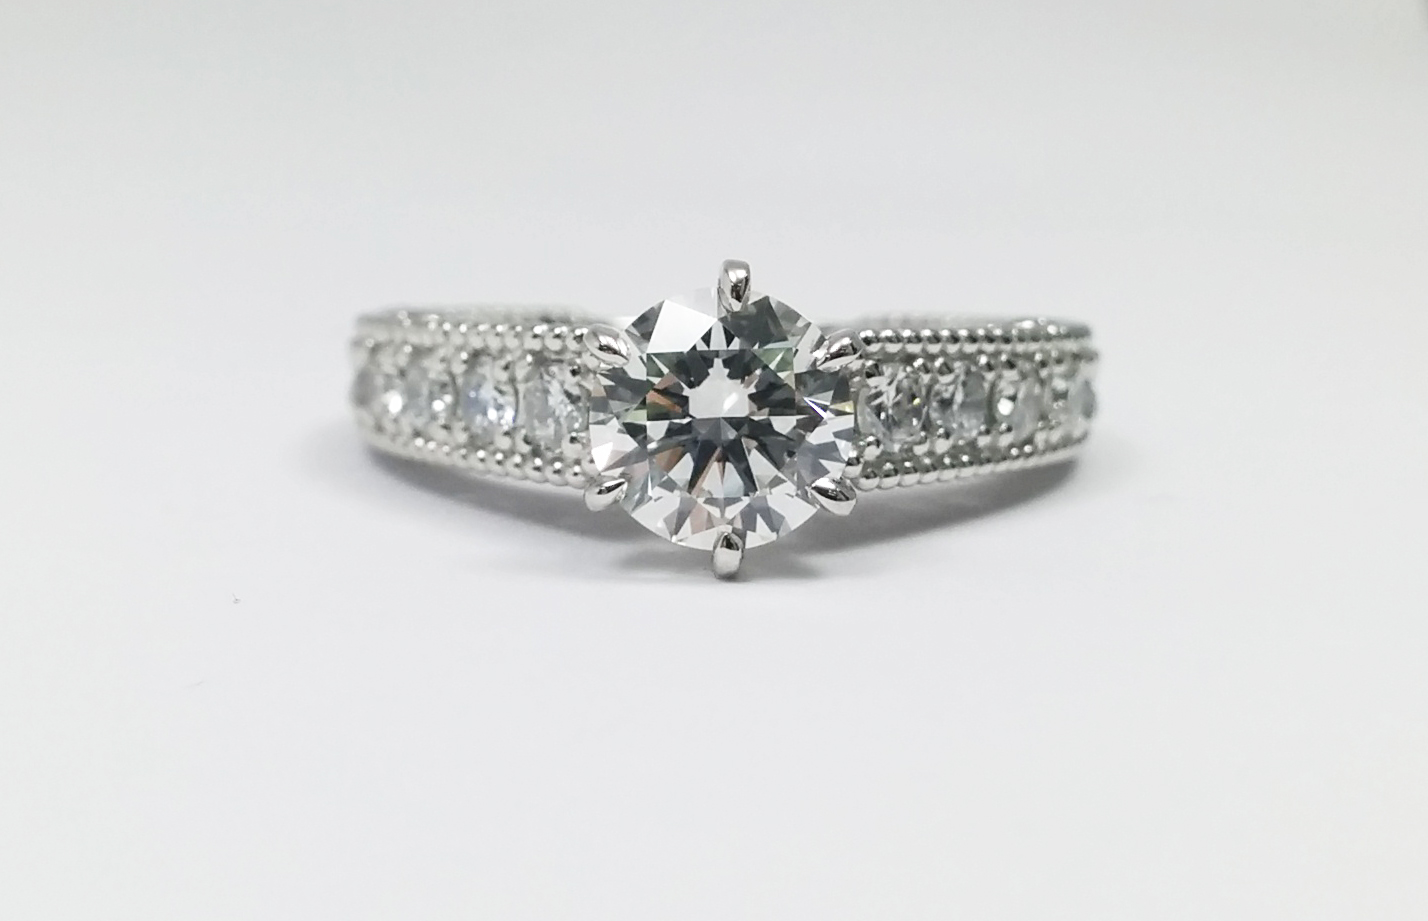 Filigree & Wheat Engraving Heirloom Engagement Ring 0.40 tcw.